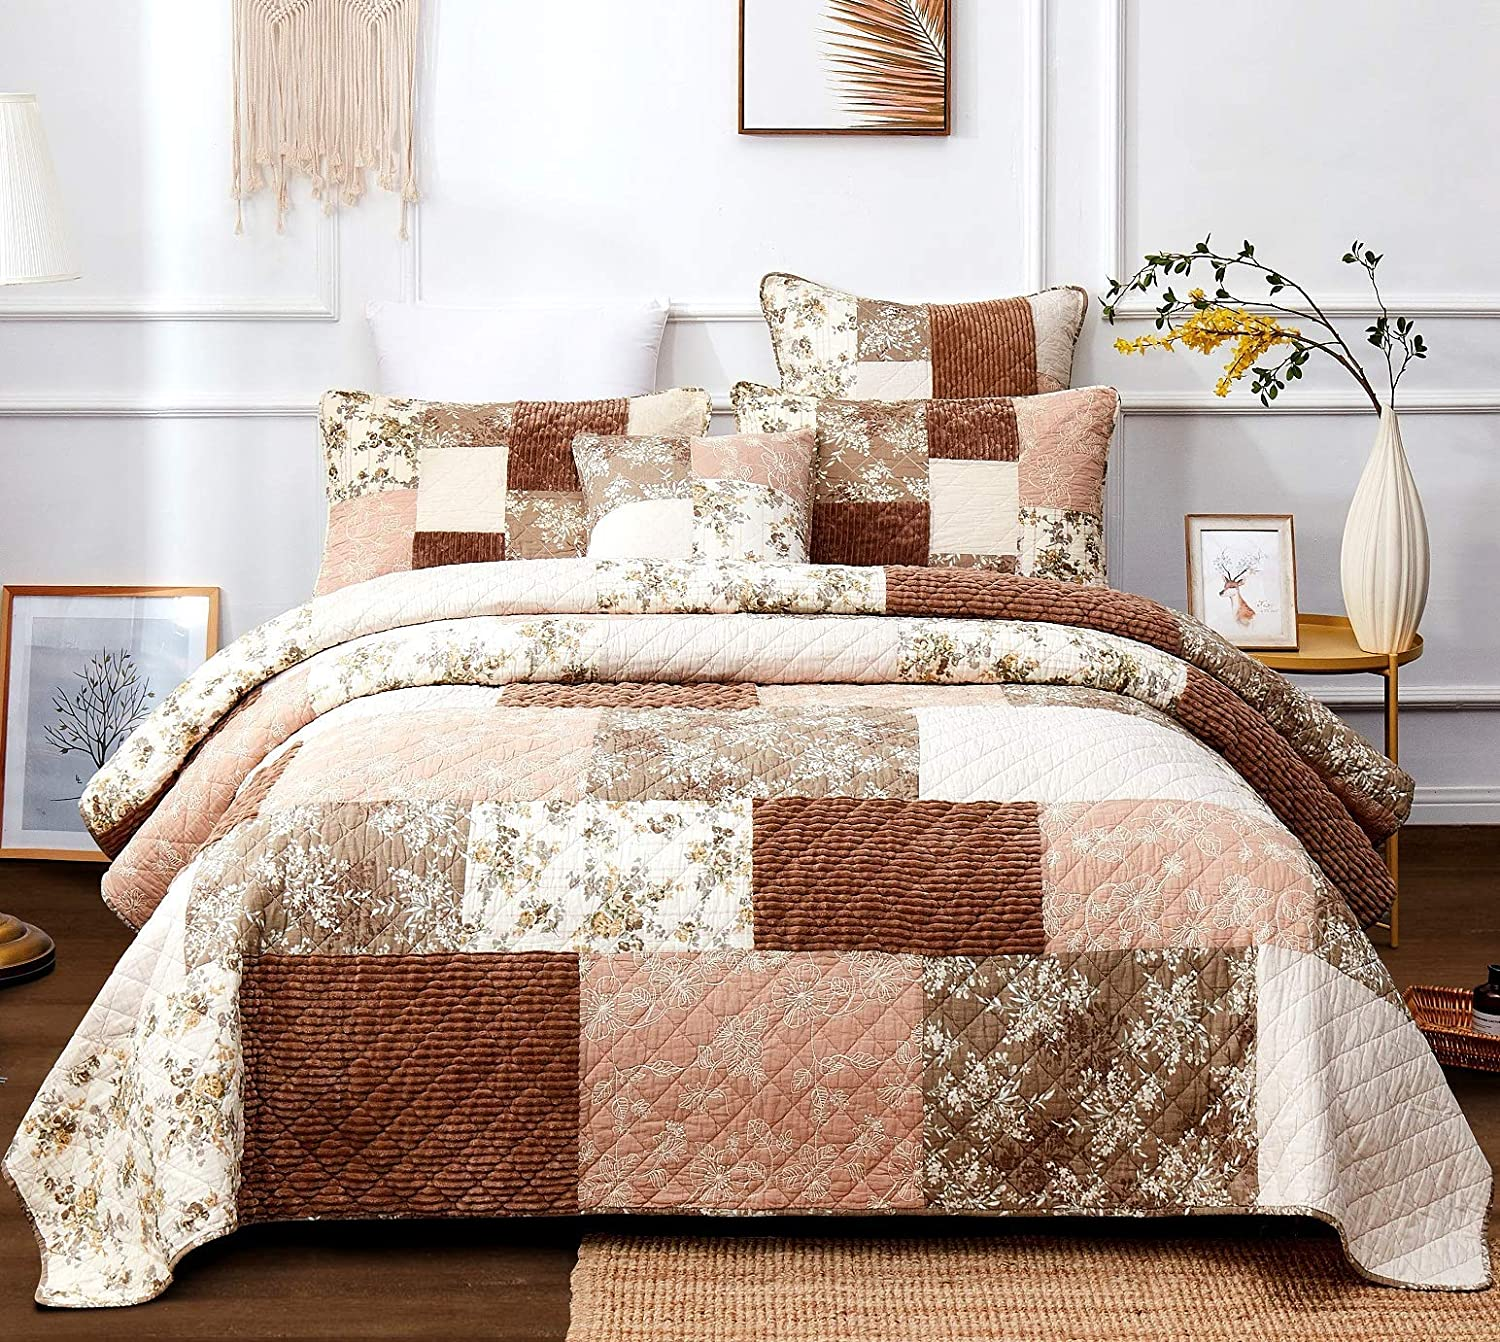 DaDa Bedding Dusty Tea Rose Cotton Patchwork Bedspread - Soothing Corduroy Bohemian Mauve Pink & Chocolate Brown Floral - Soft Quilted Coverlet Set - California King - 3-Pieces